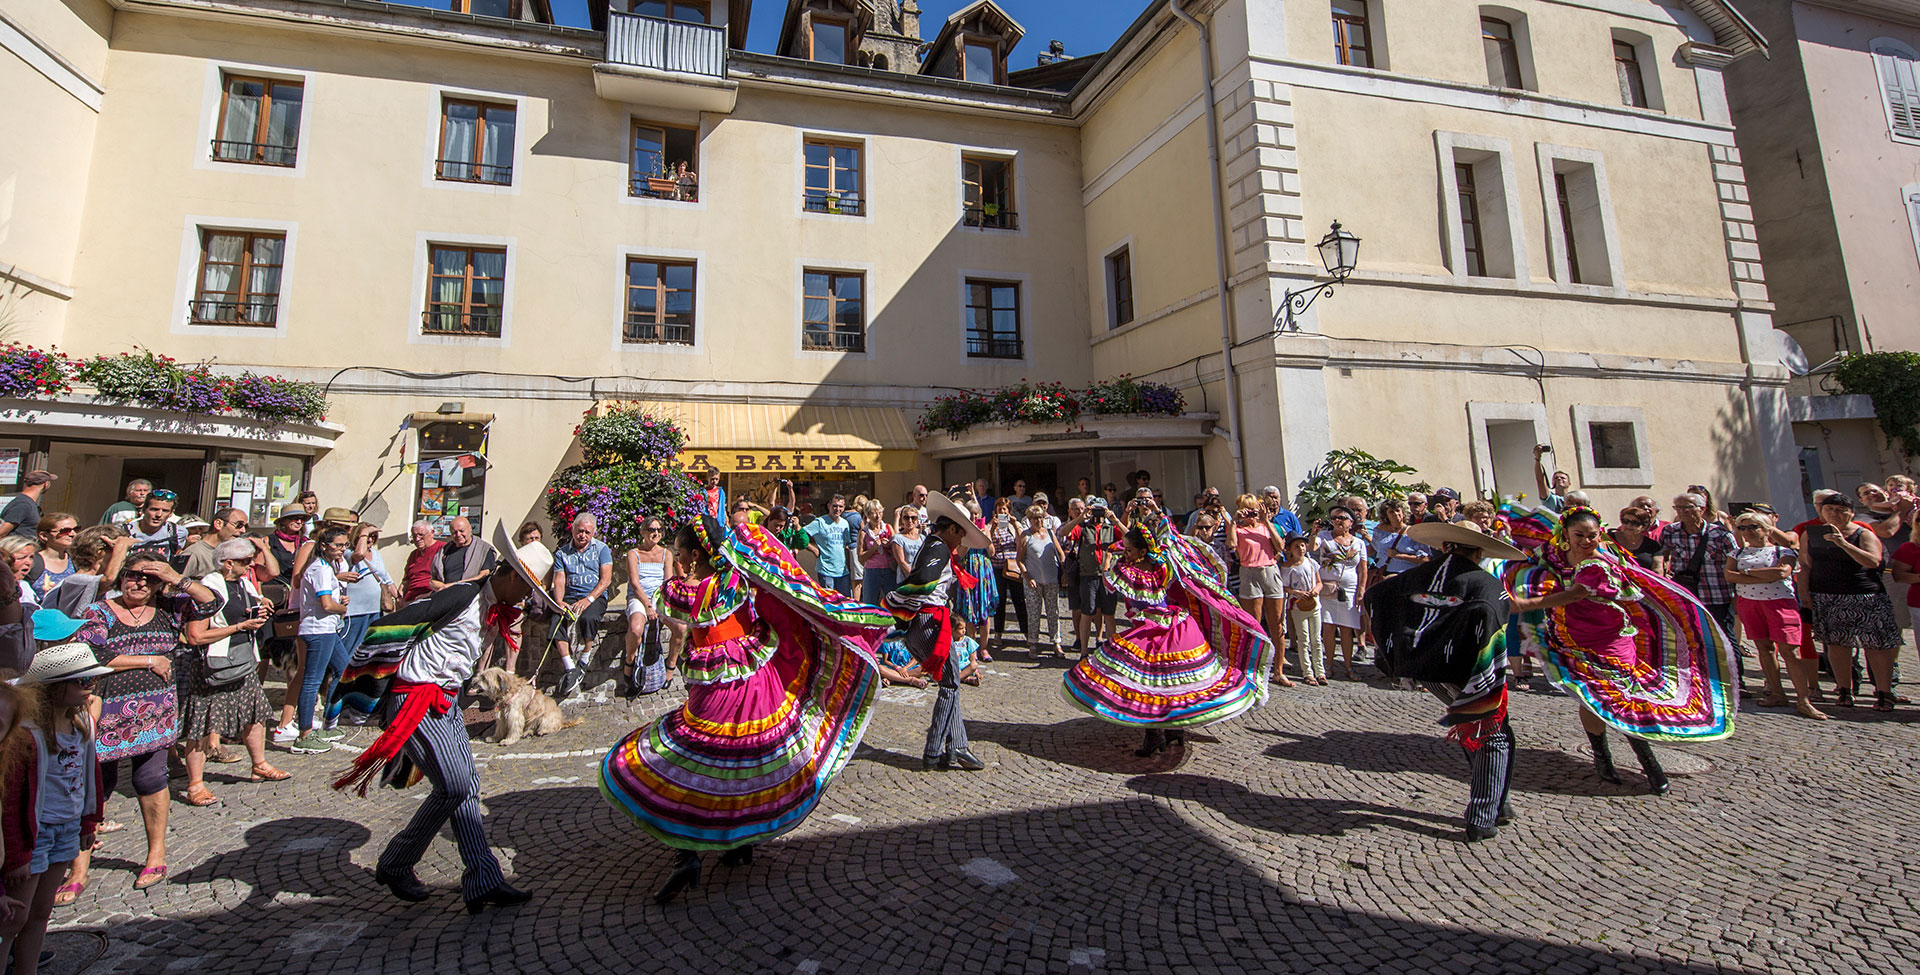 Take advantage of the charm of Barcelonnette<br>and its Mexican atmosphere